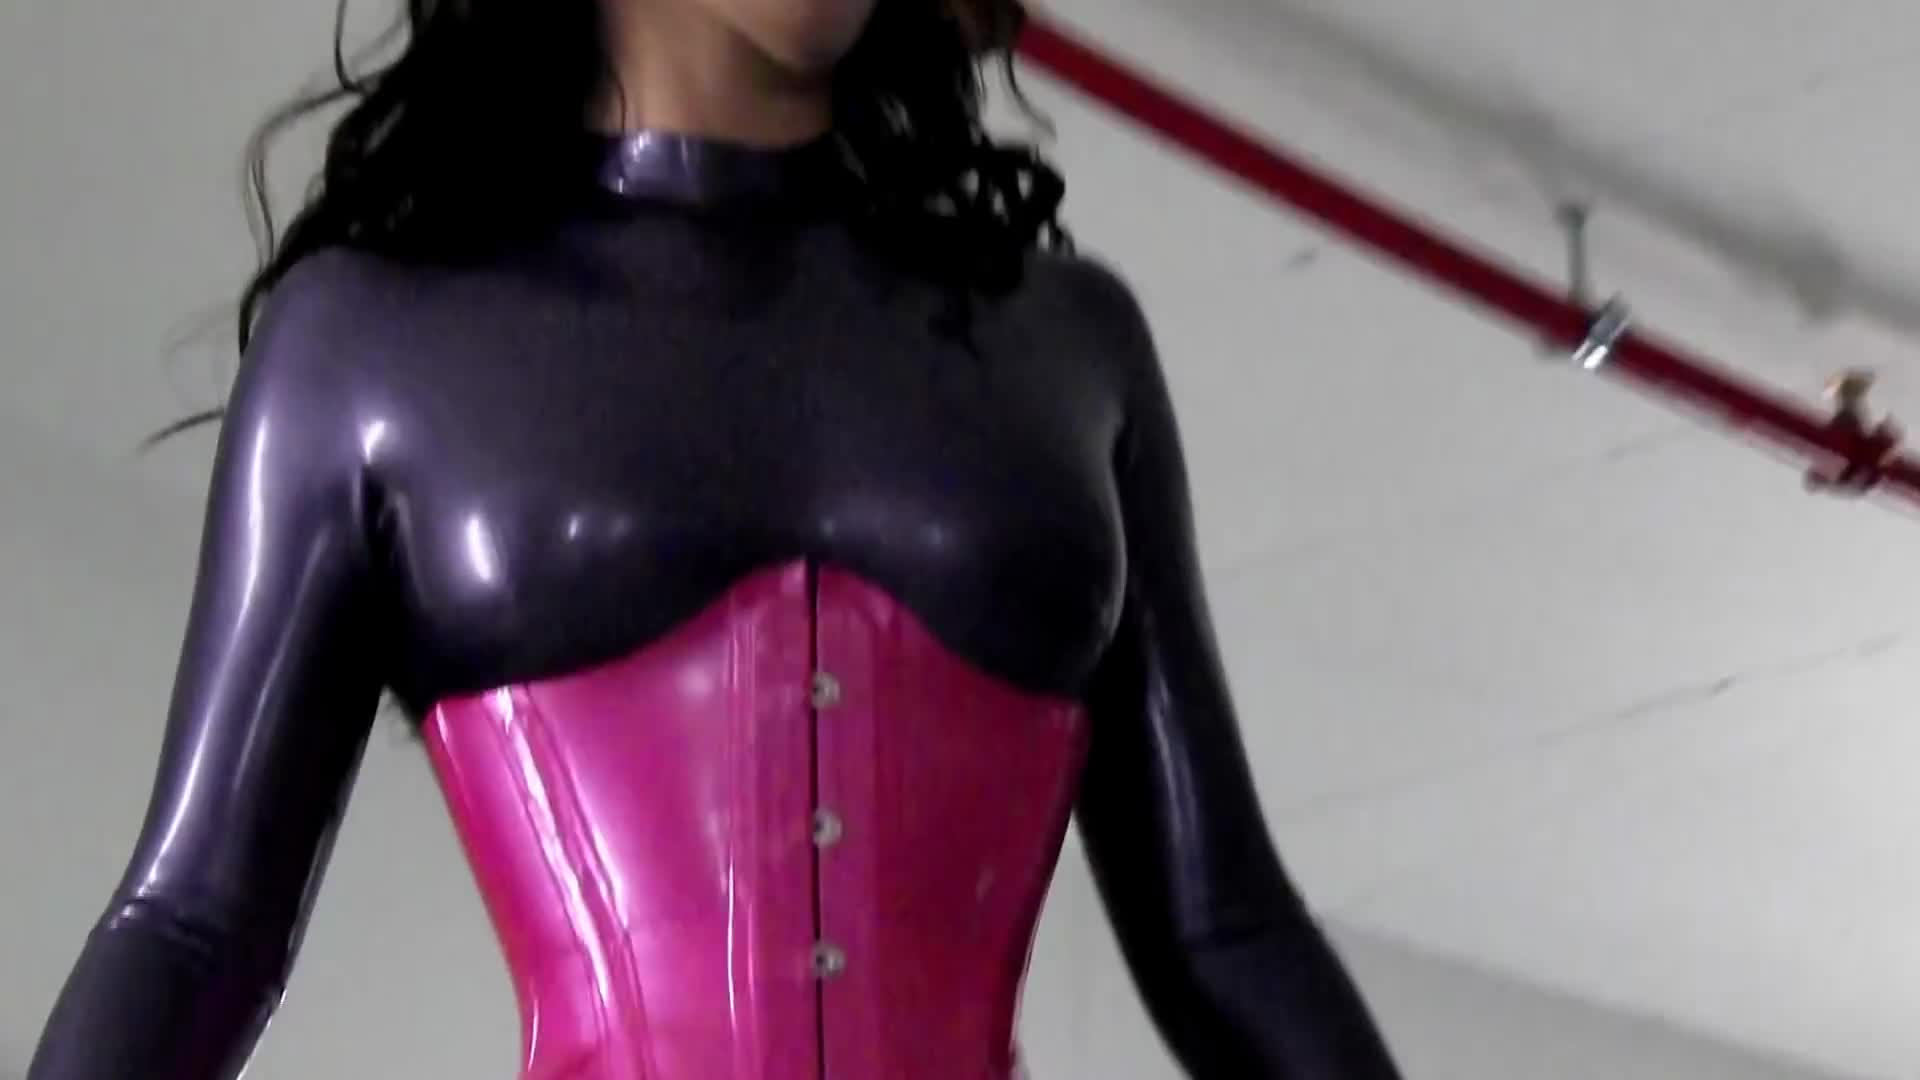 Amateur Latexmodel Shooting